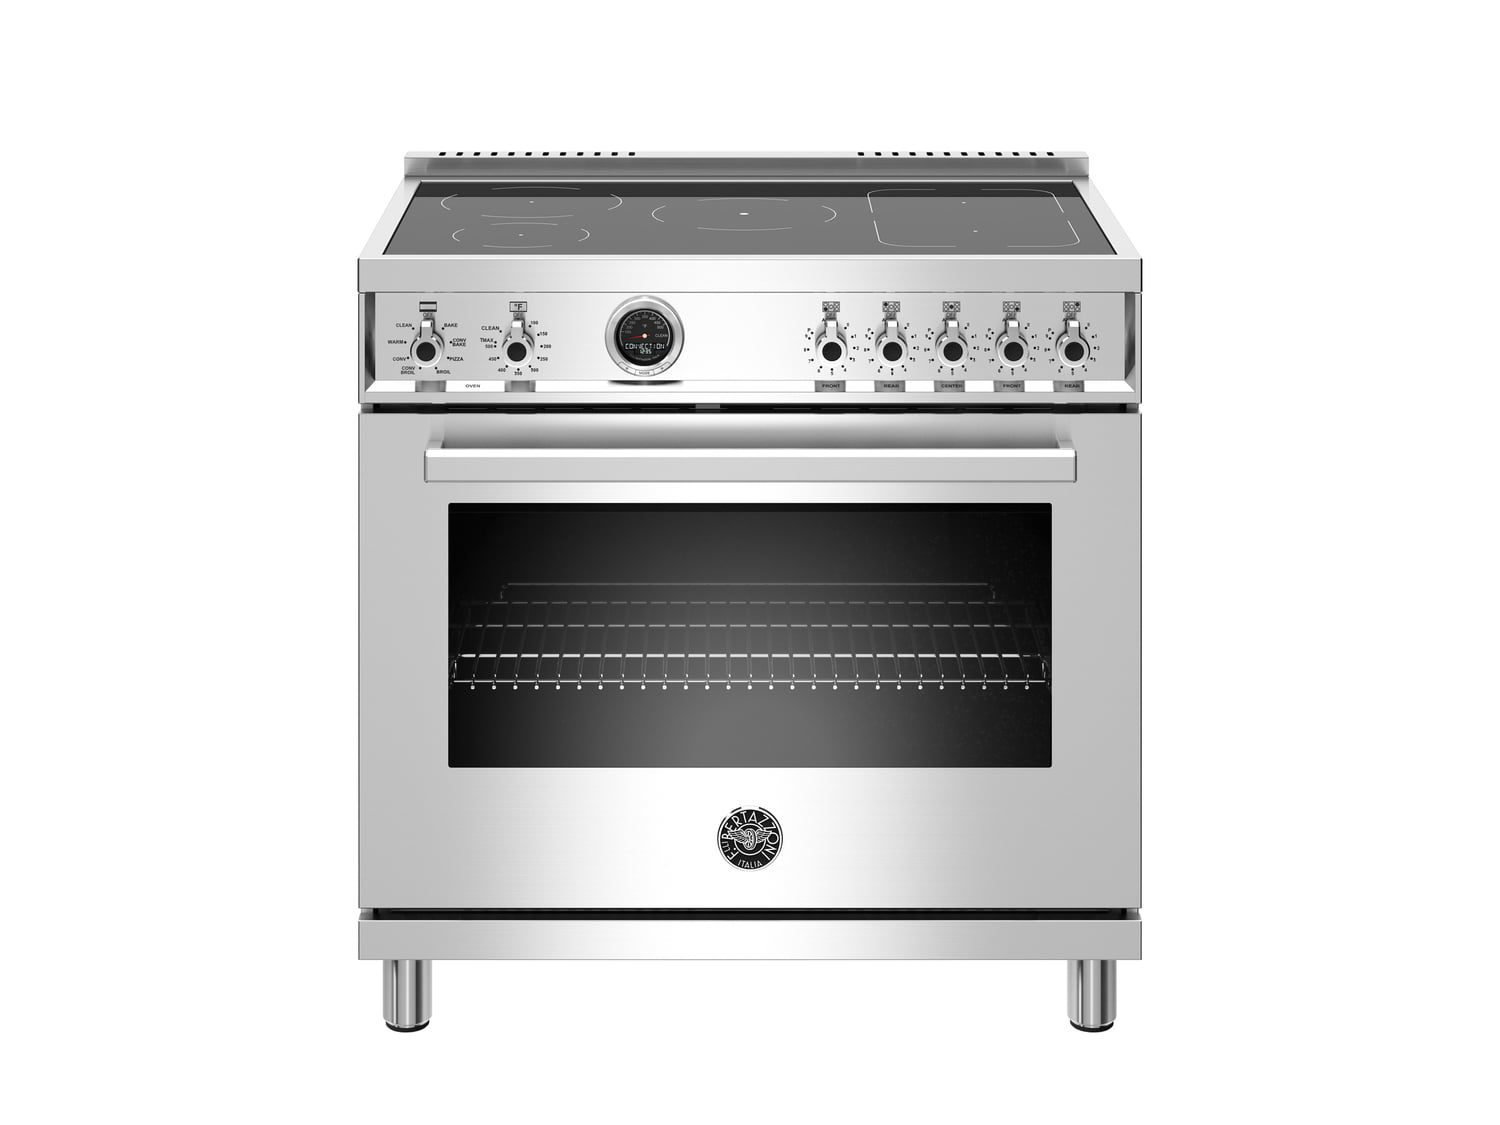 Load image into Gallery viewer, Bertazzoni PROF365INSXT 36 Inch Induction Range, 5 Heating Zones, Electric Self-Clean Oven Stainless Steel